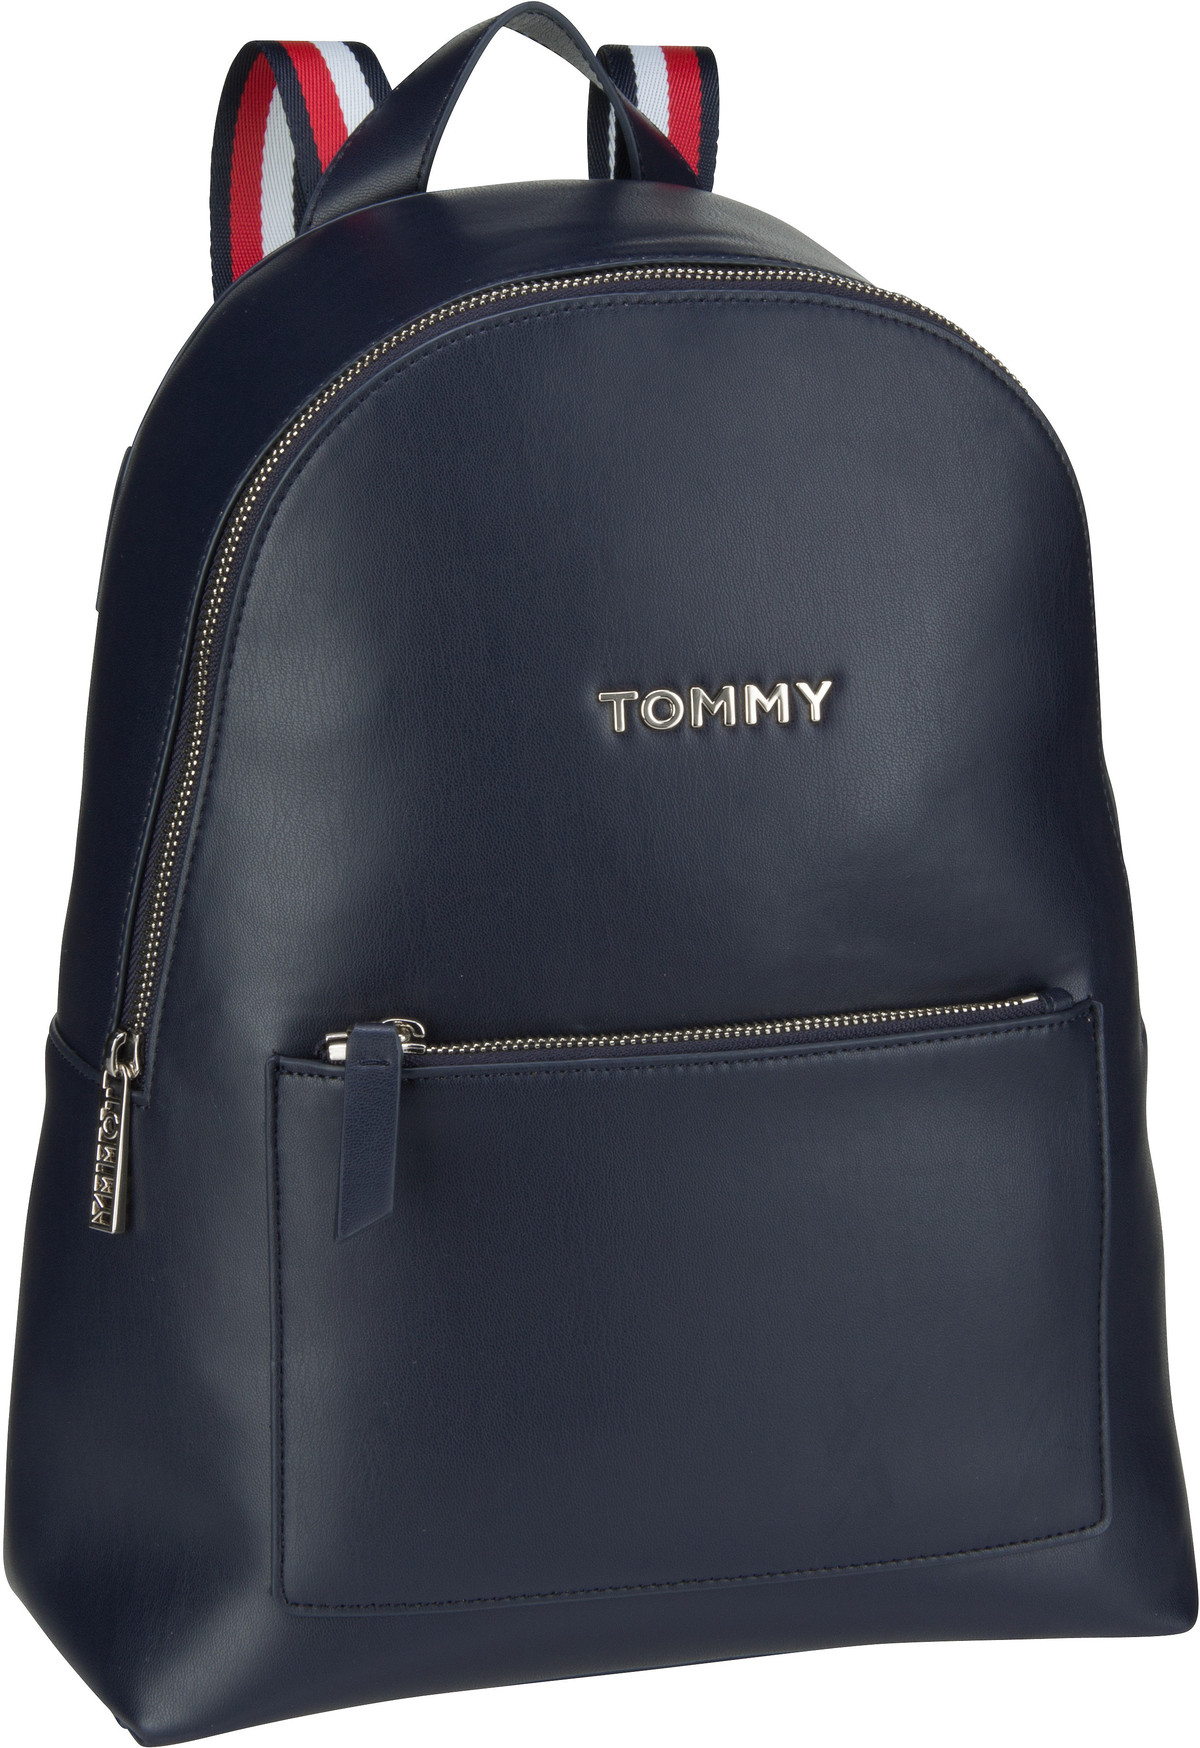 Rucksack / Daypack Iconic Tommy Backpack Sky Captain